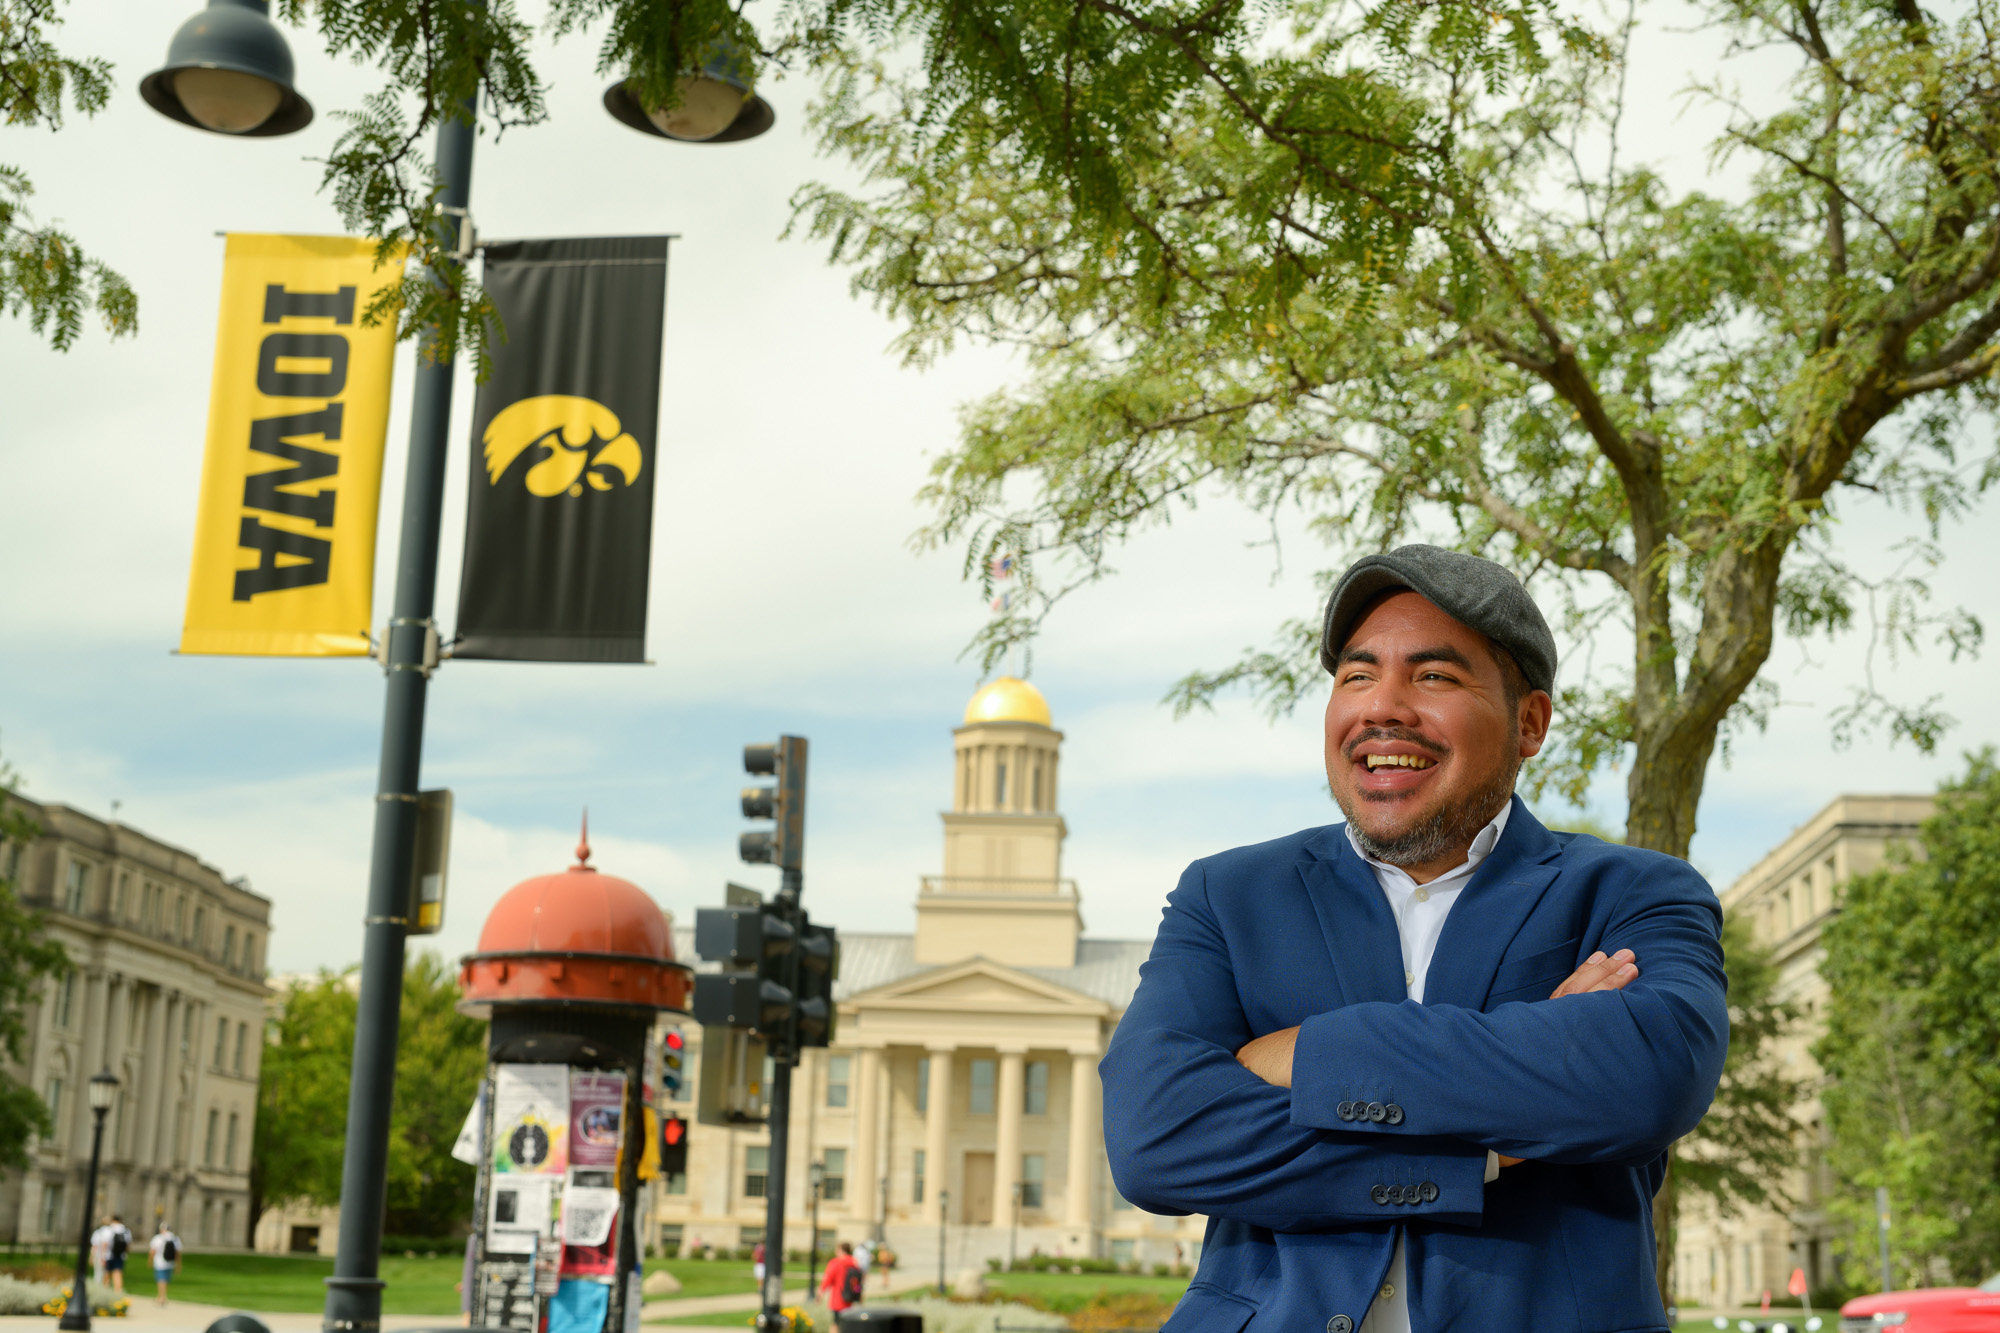 University of Iowa lecturer Jorge Guerra standing on the university of iowa campus; Iowa and tiger hawk banners and the old capitol are visible in the background